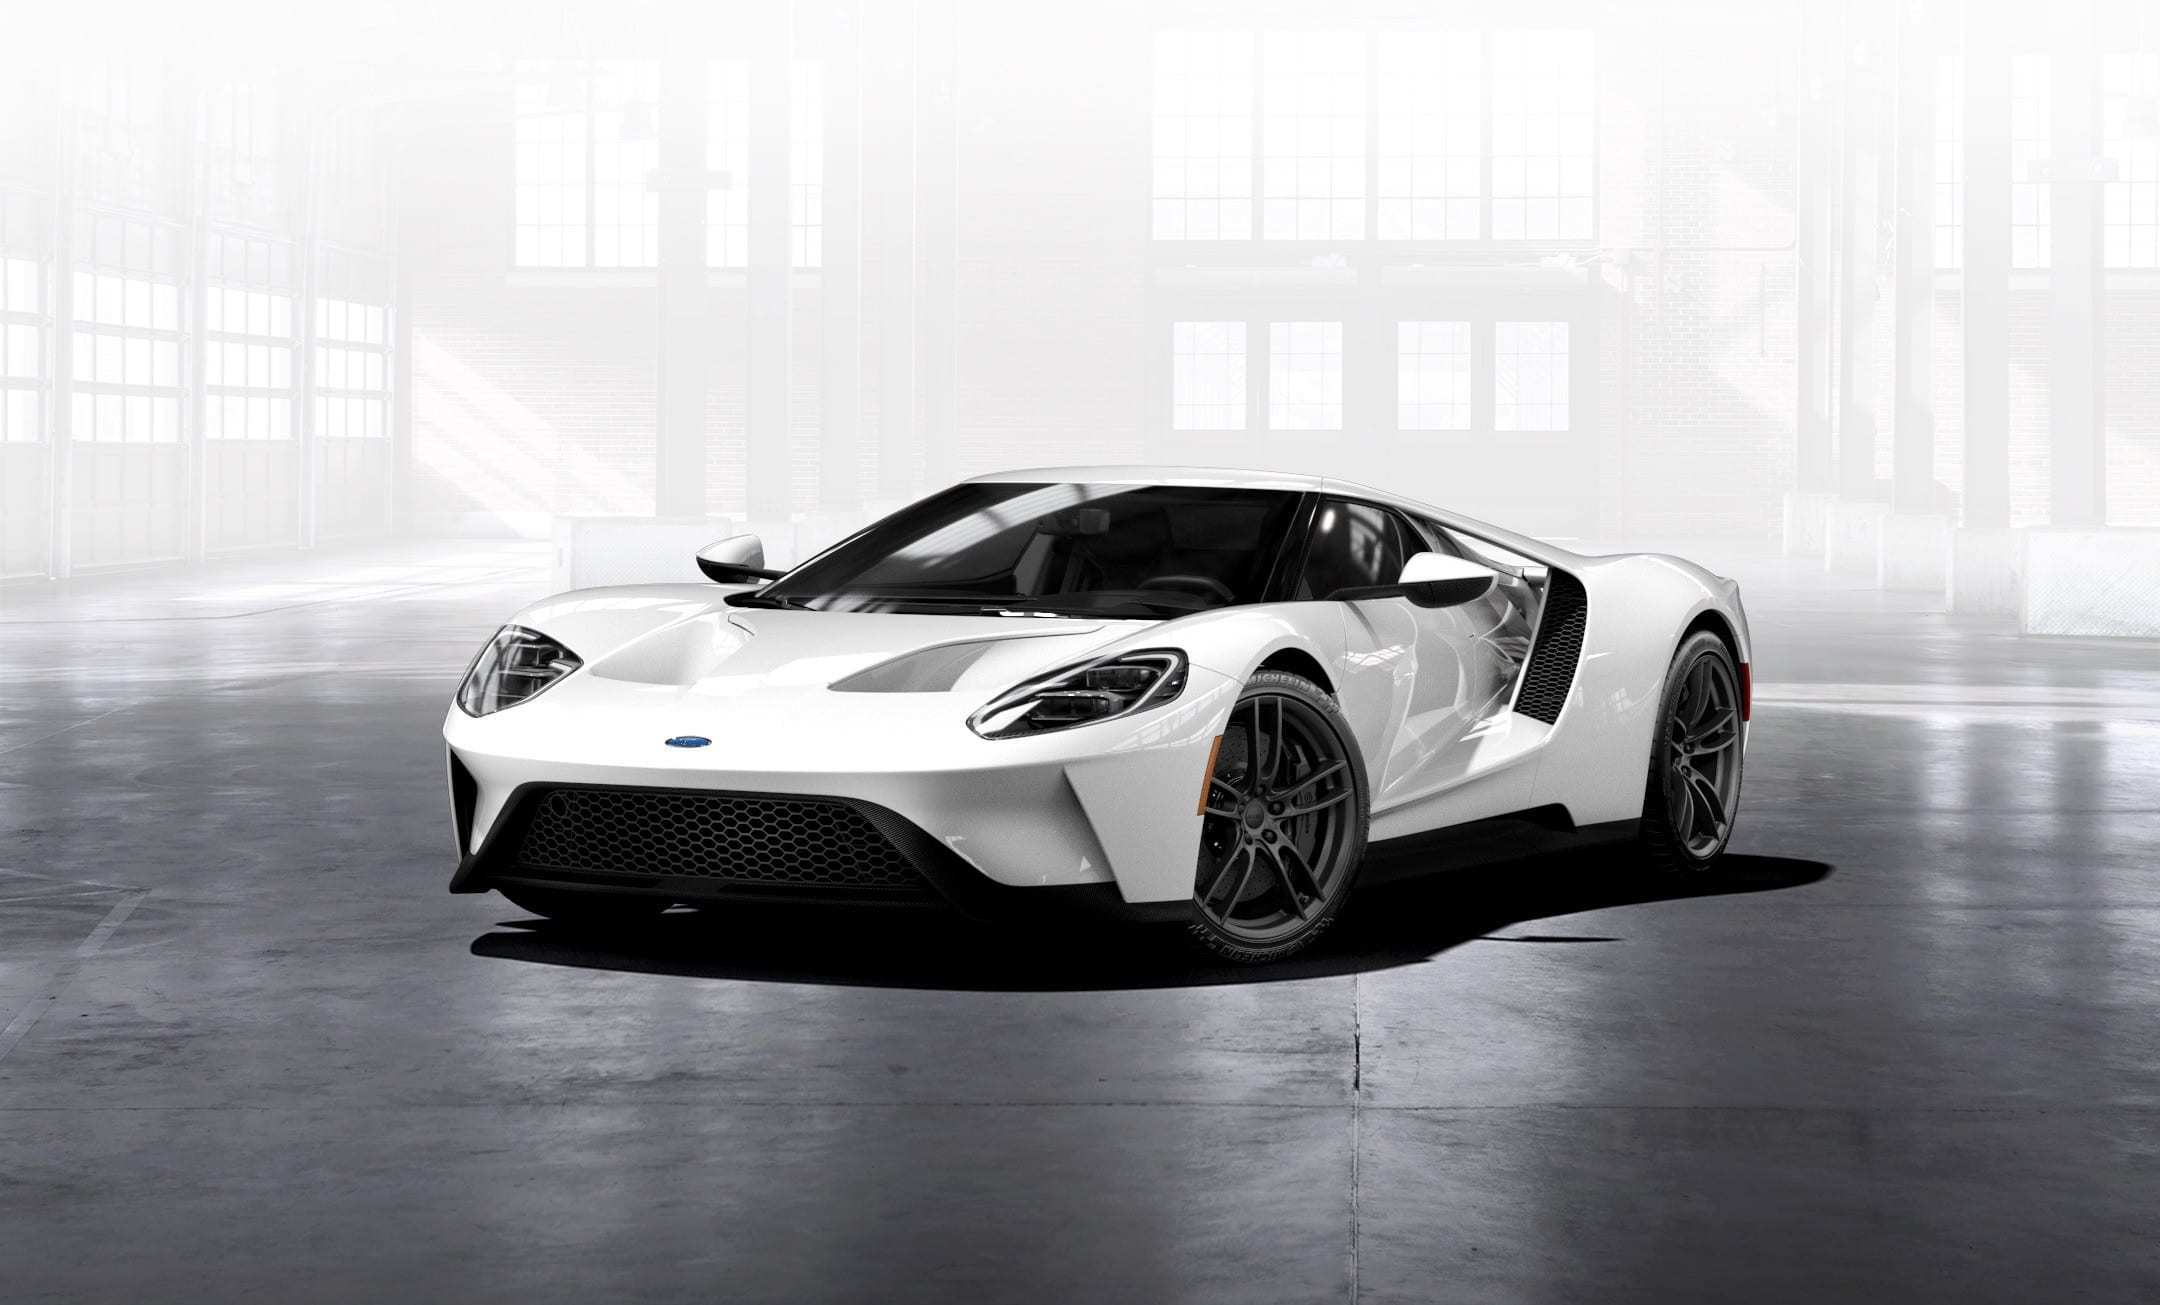 55 A 2020 Ford Gt Supercar Release Date